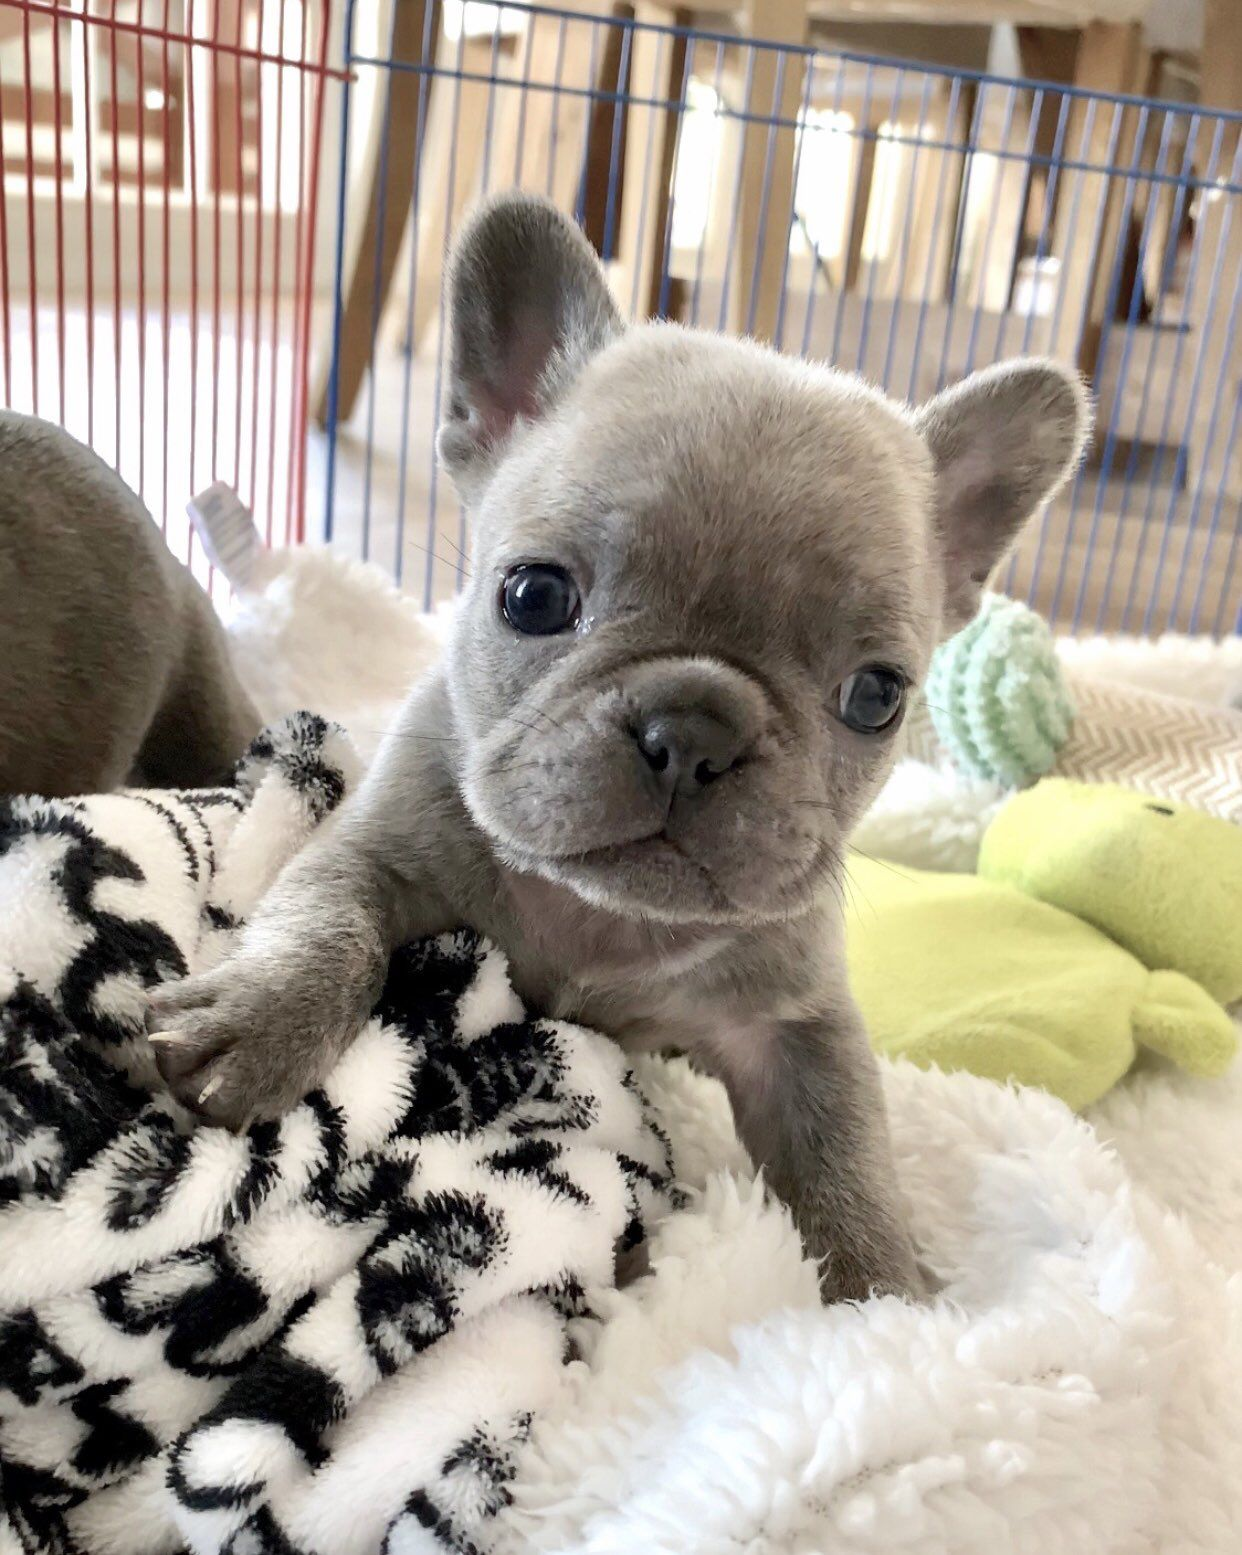 Pin By Paige Dallas On Whittle Baby S Puppy Cuddles French Bulldog Bulldog Puppies